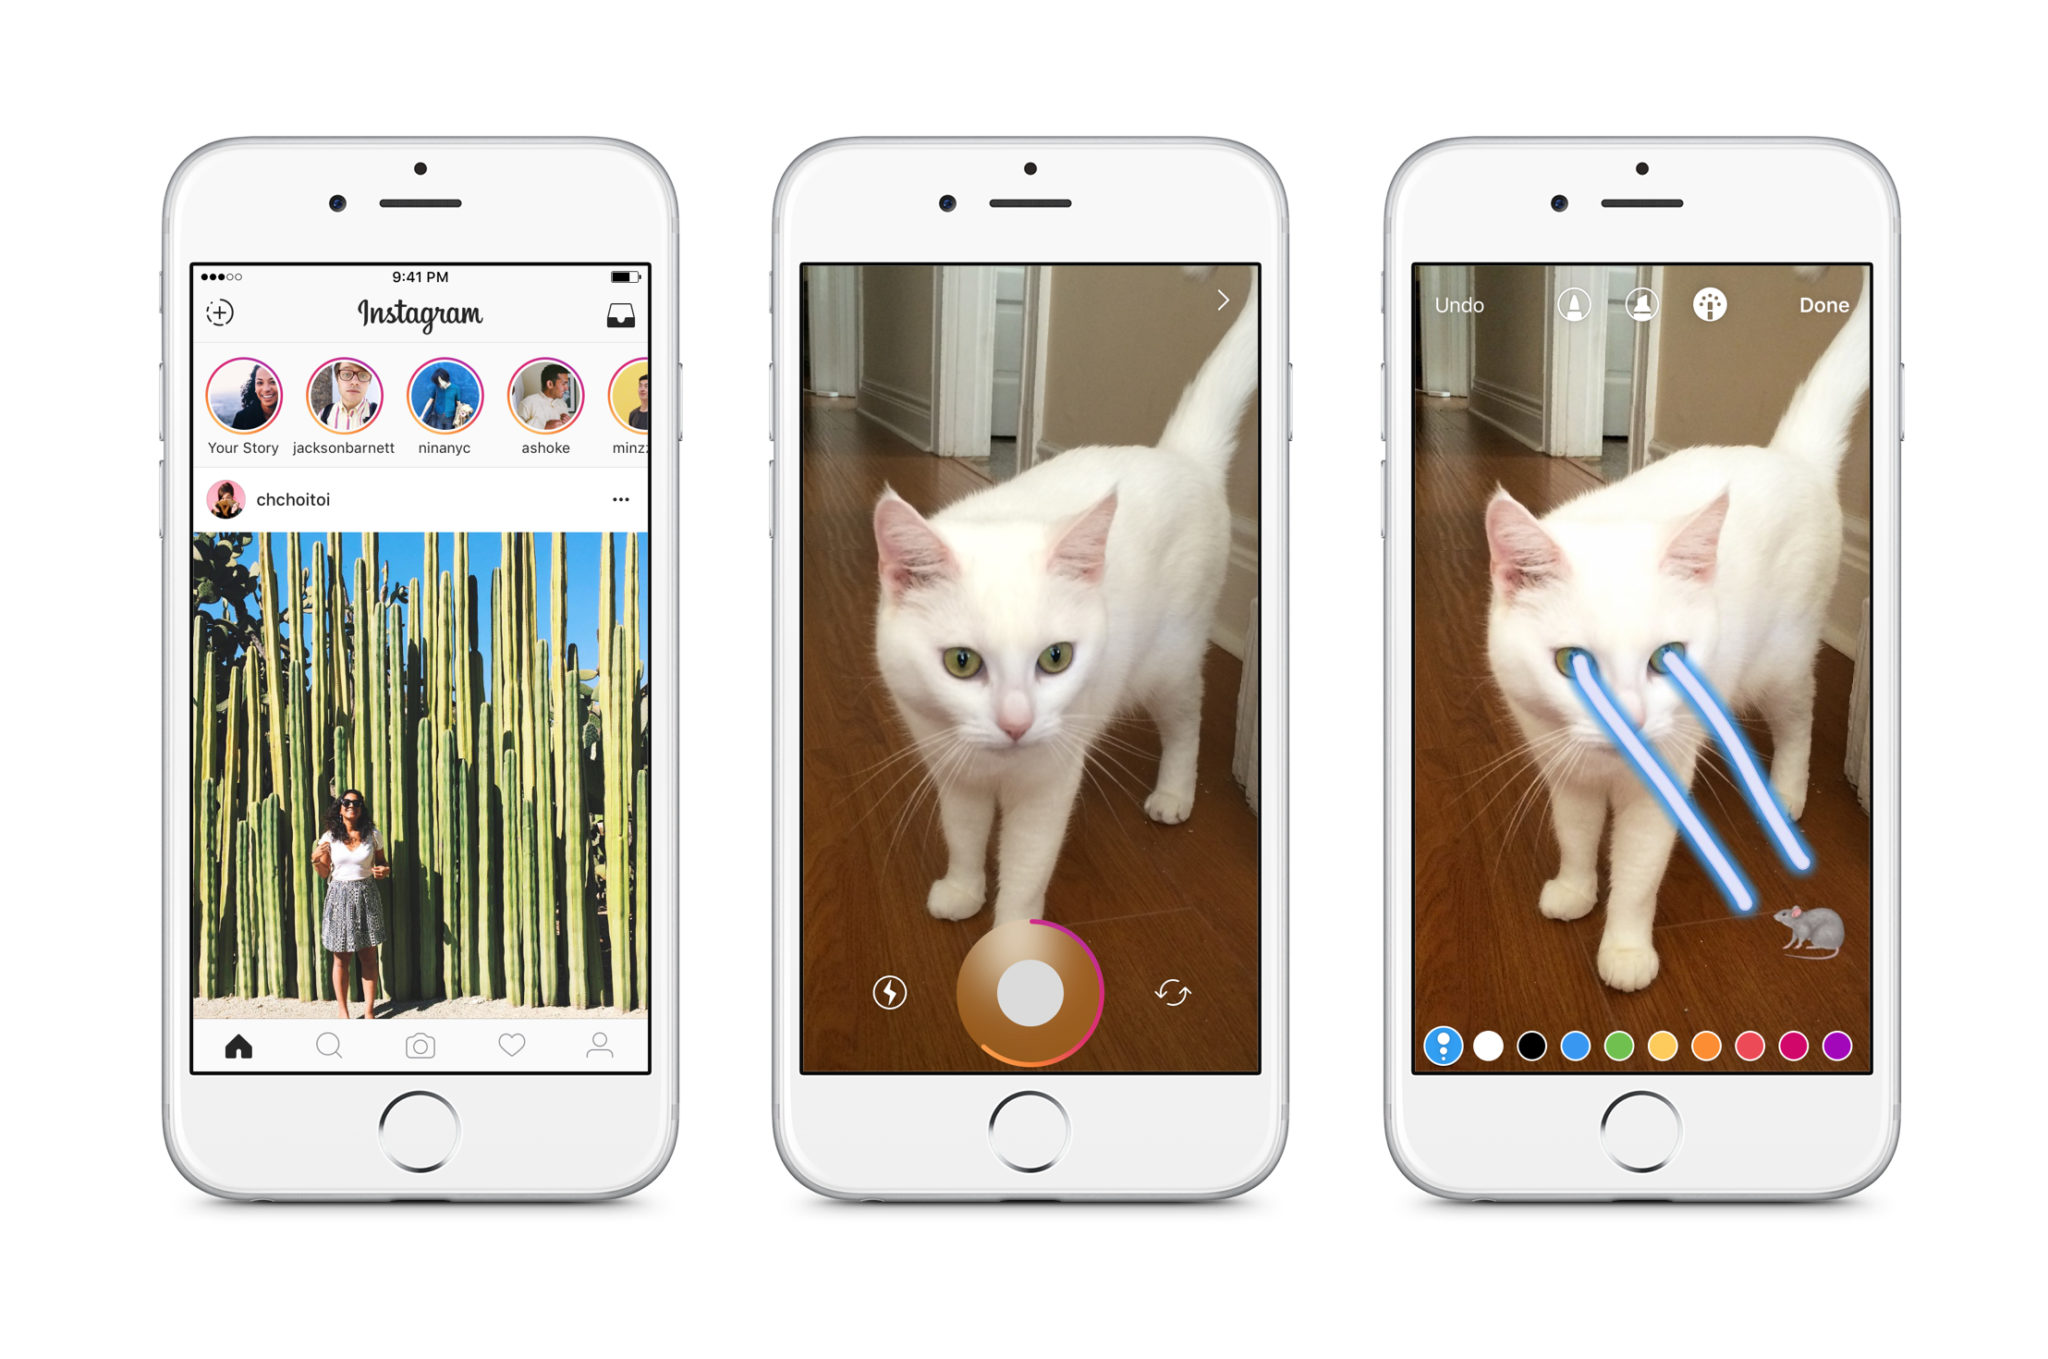 Instagram Stories - Creating